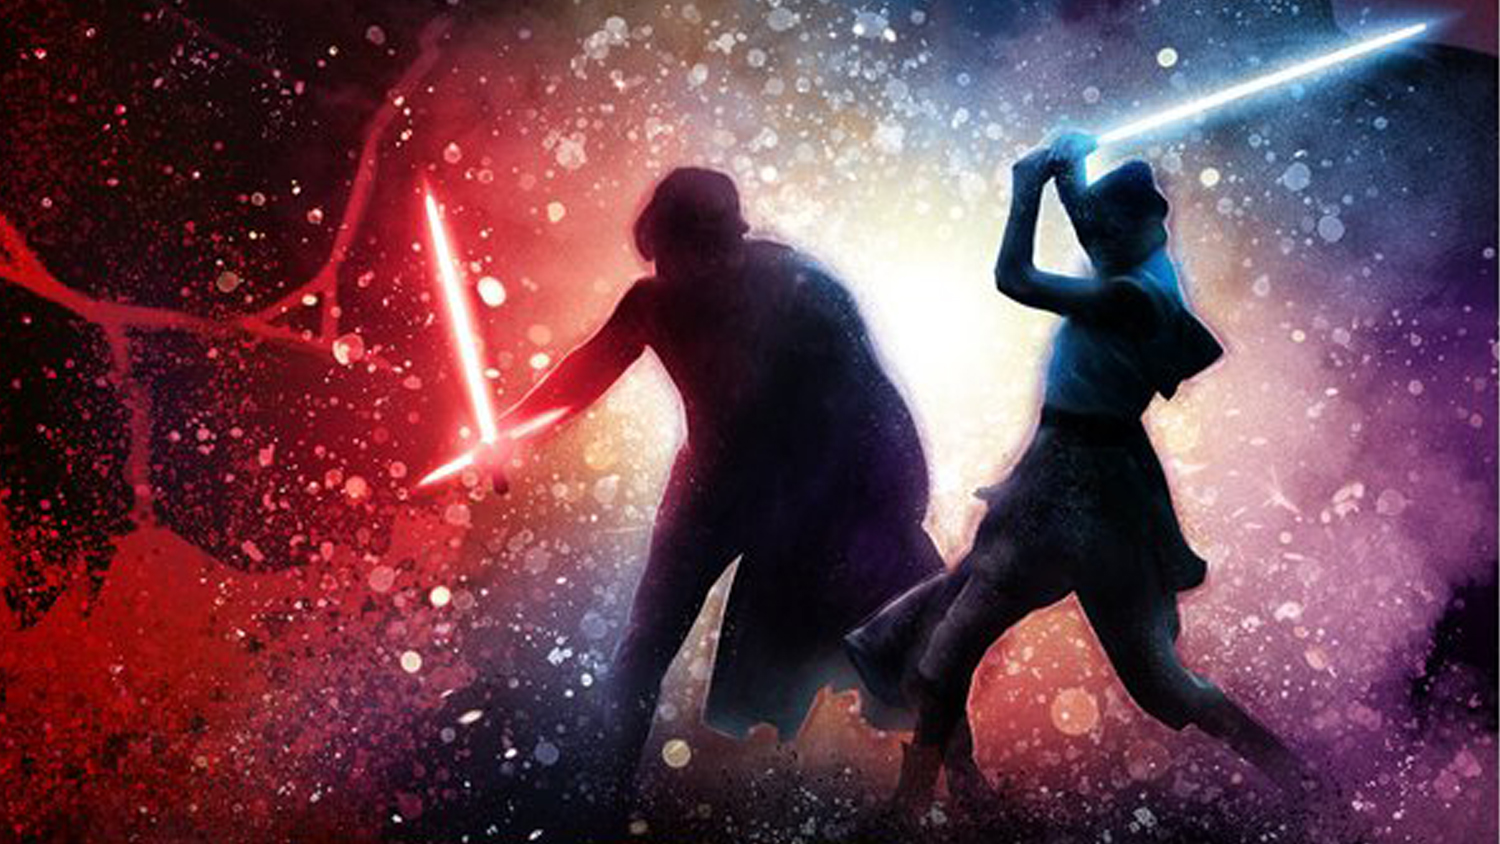 Star Wars The Rise Of Skywalker Poster Wants Revenge Plus Another Look At Dark Rey Movie Nooz